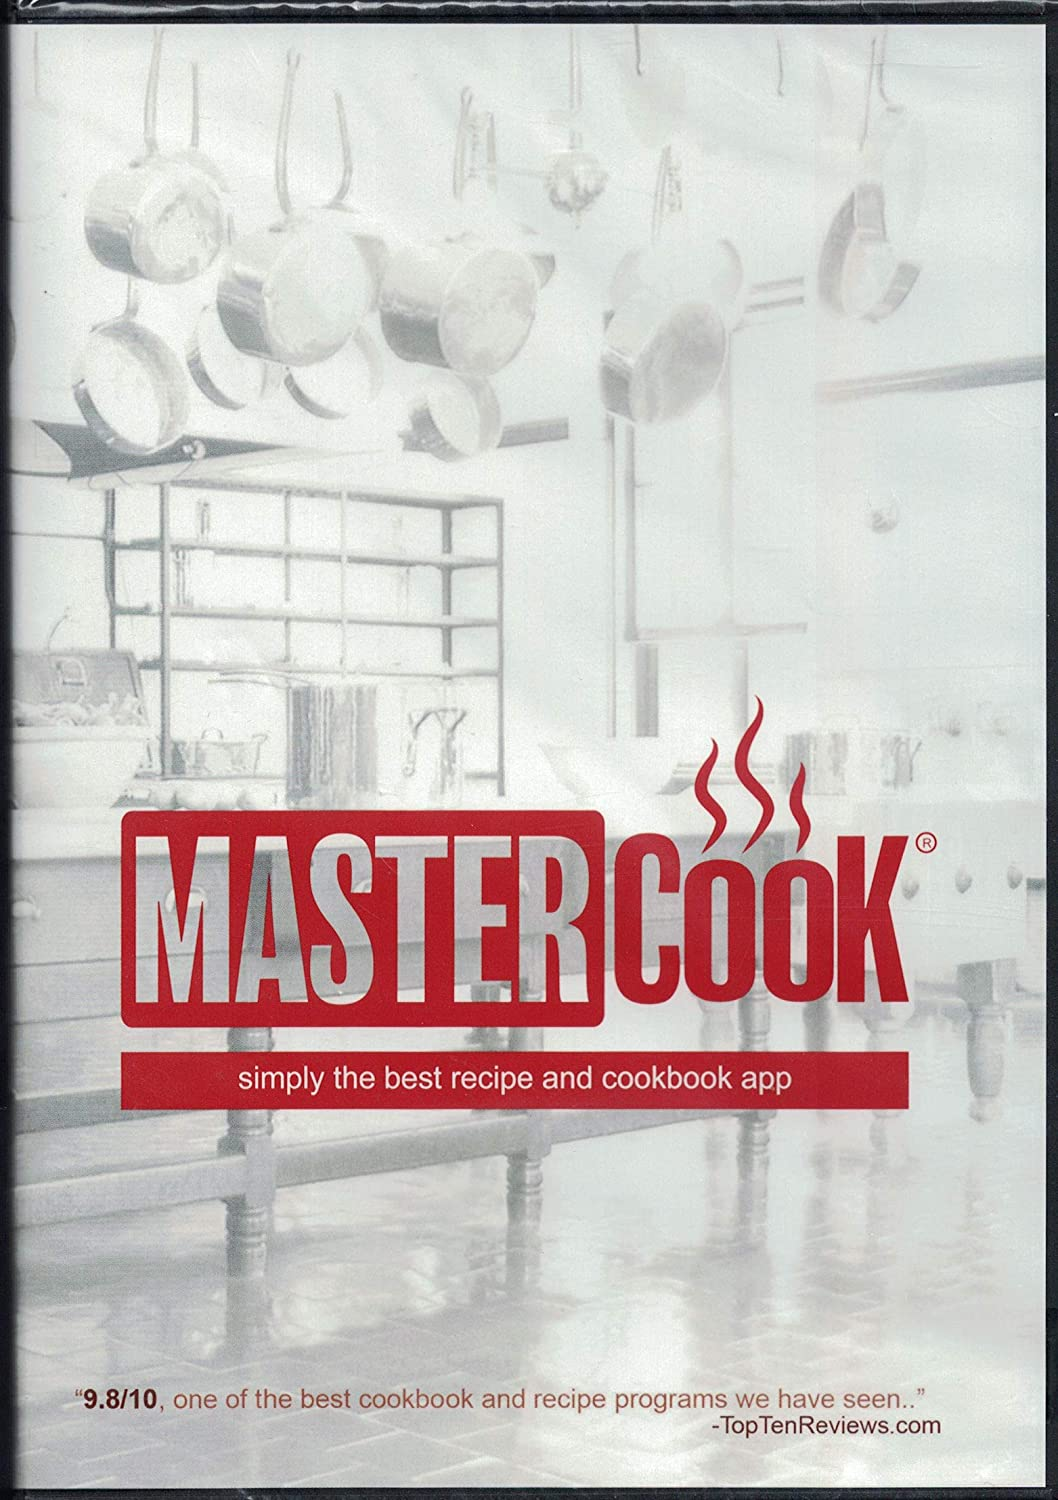 B0166QDIN2 Mastercook 15 Recipe PC 81e1v7TCbCL